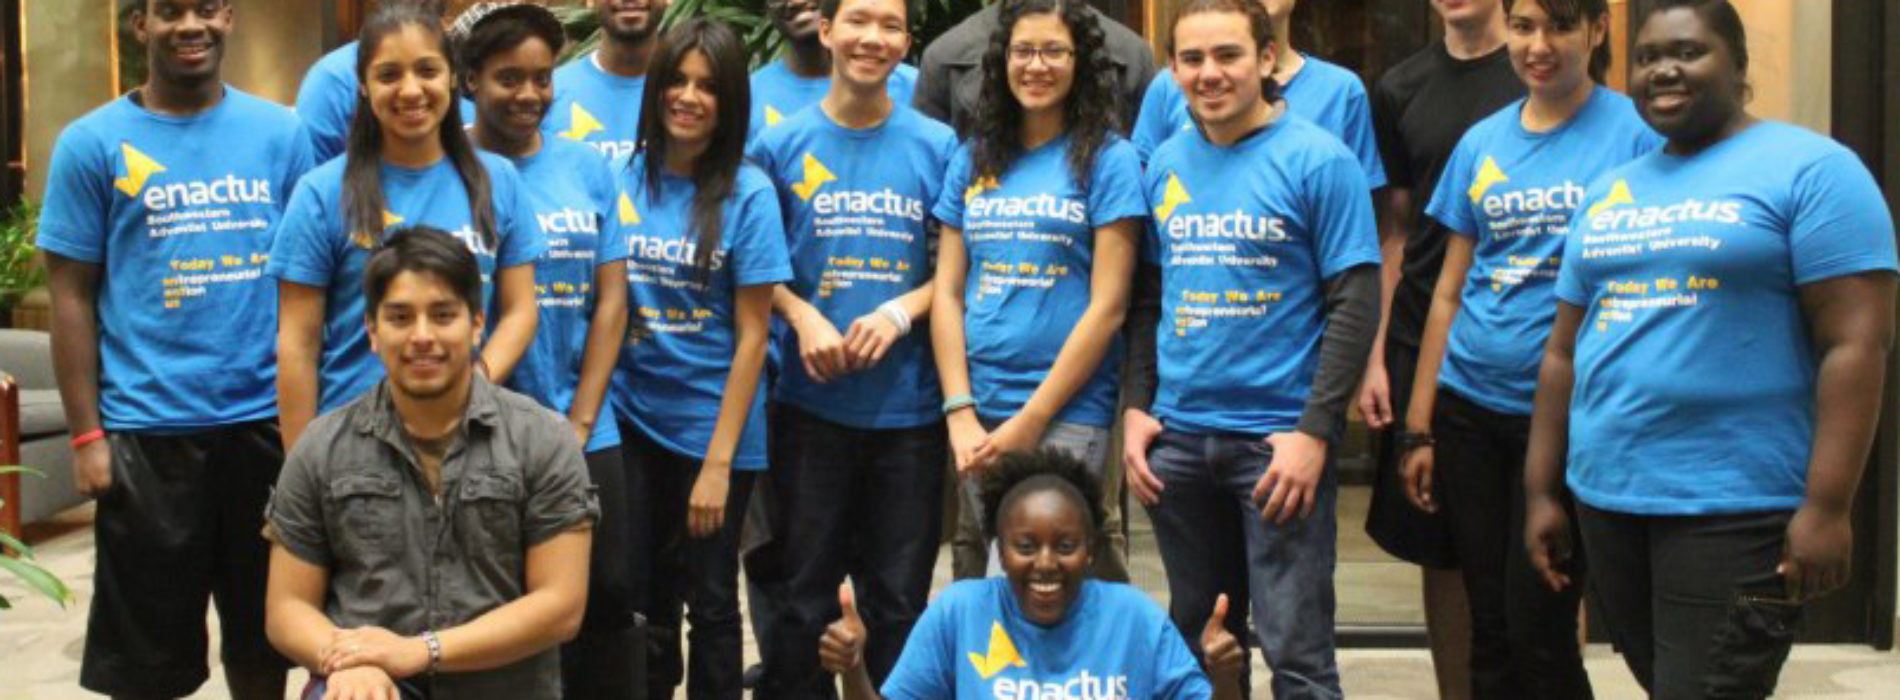 Enactus Joins Team for Dominican Republic Mission Trip